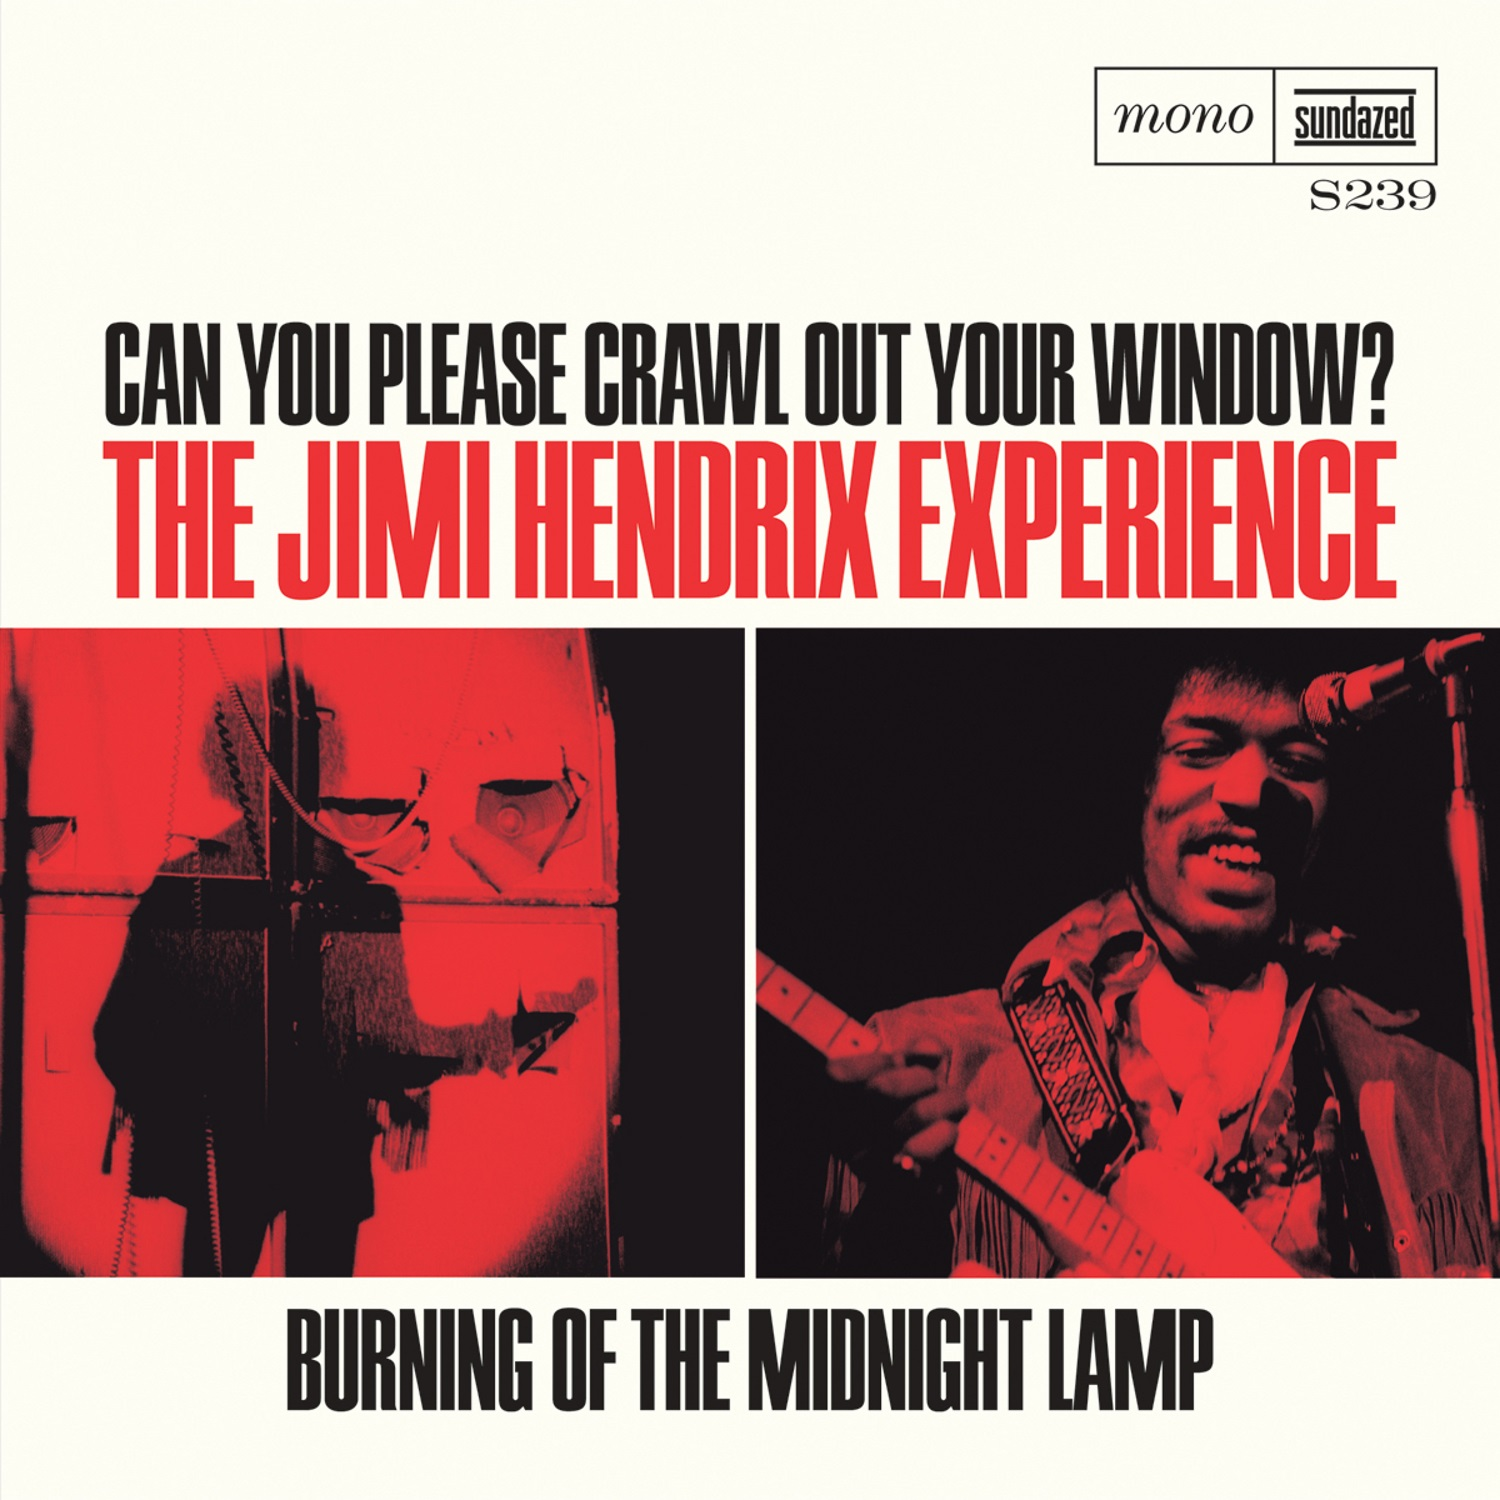 """Hendrix, Jimi - Can You Please Crawl Out Your Window? / Burning of the Midnight Lamp 7"""" Single - S 239"""